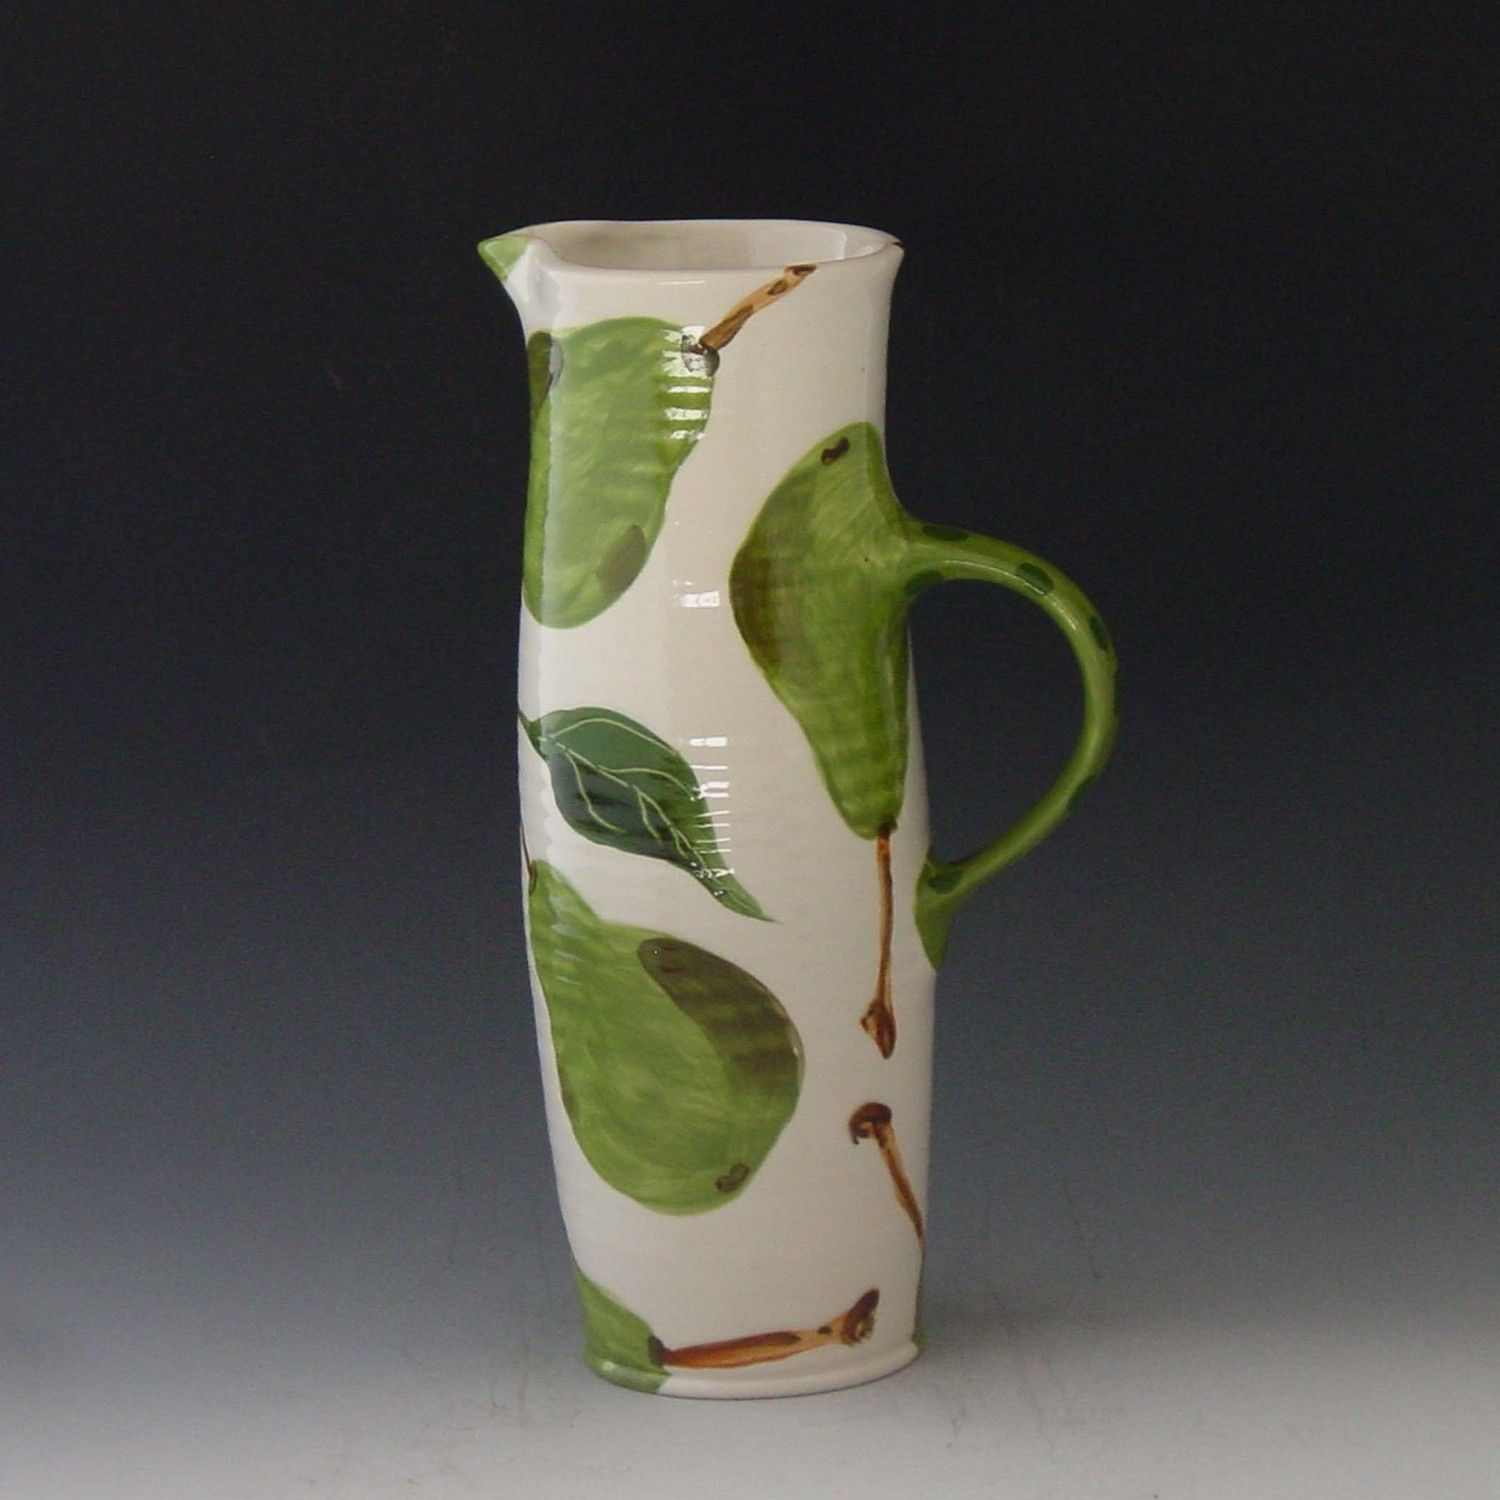 Tall Pitcher - Pear Tall Pitcher White - Handpainted Green Pear Pottery for Serving Home Decor Gift   P-361W. $57.00, via Etsy.